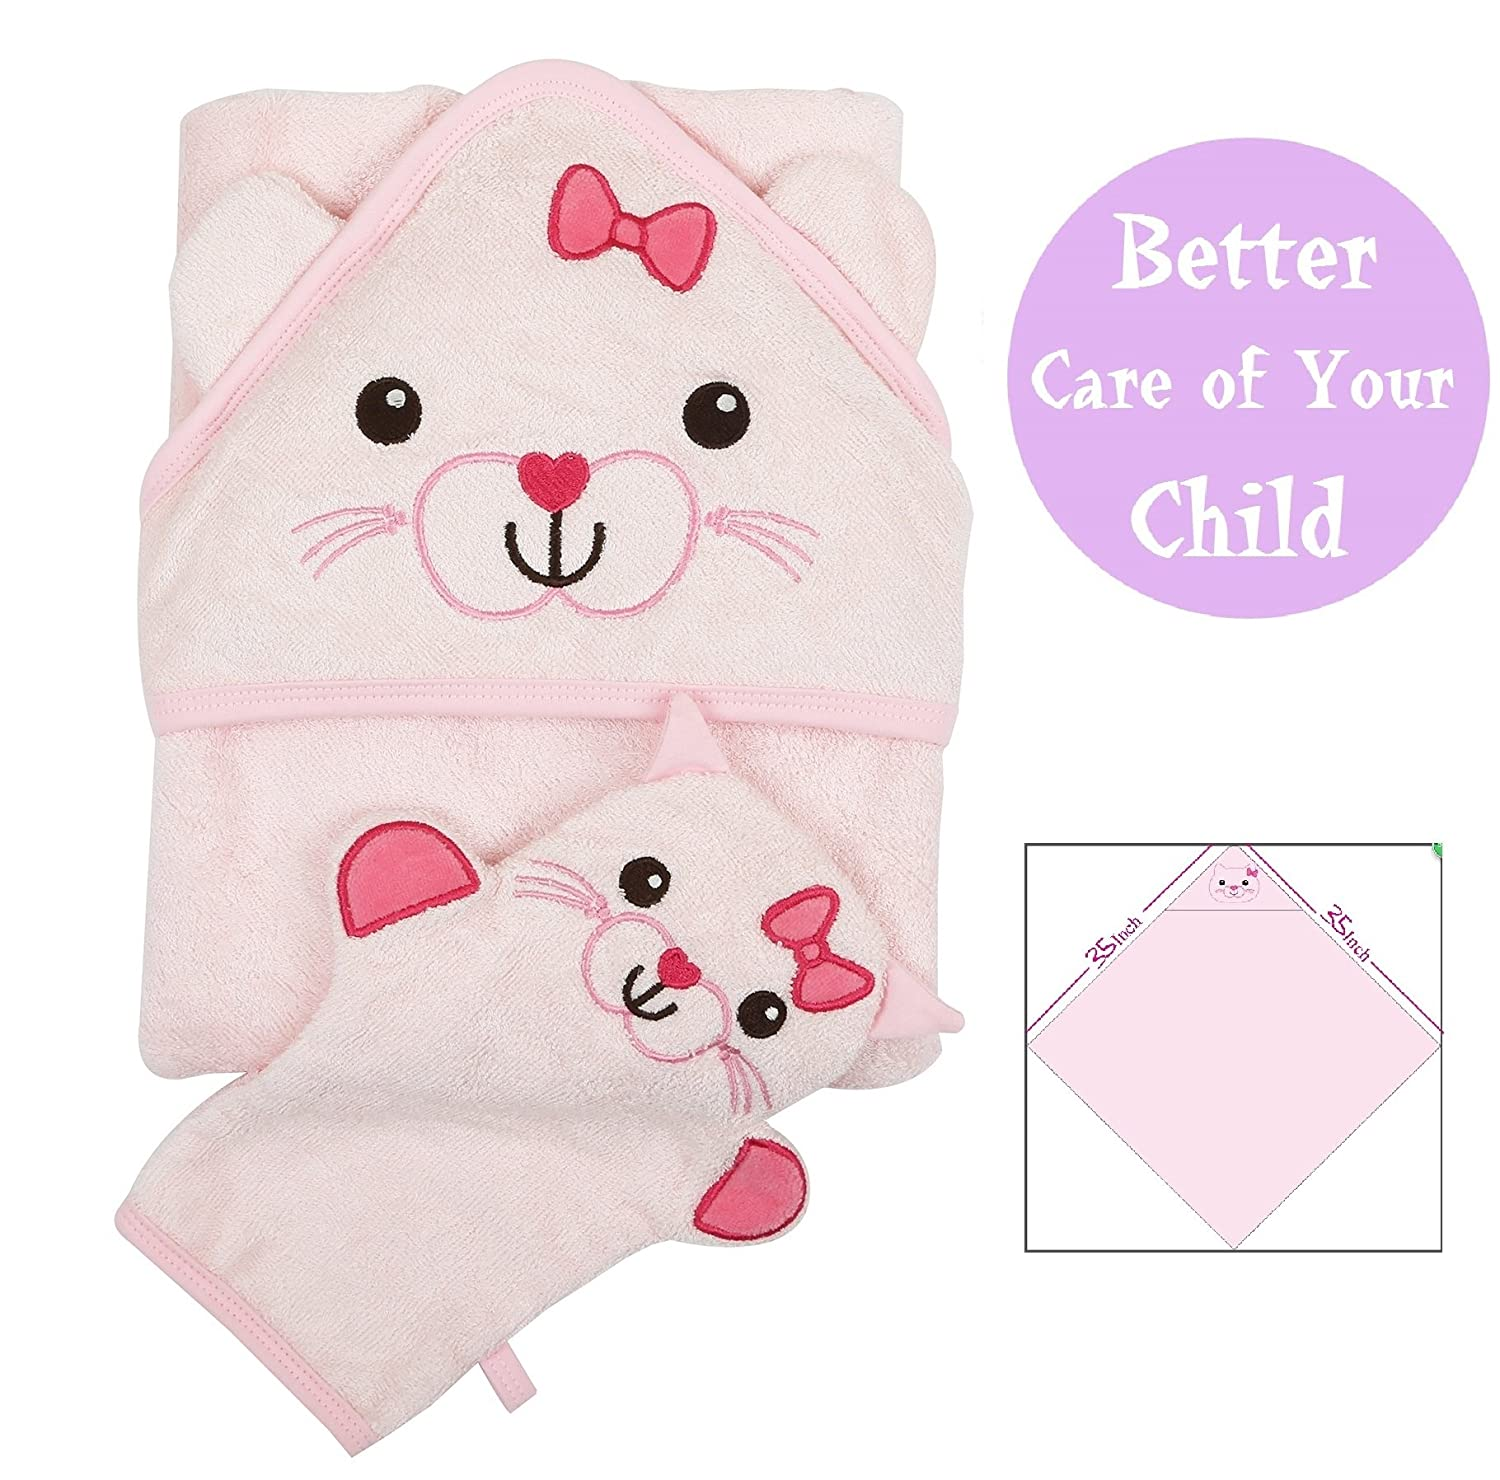 Joli Jodi Extra Soft Bamboo Hooded Baby Towel and Glove Washcloth (Pink)|Beach and Bath Towel |Antibacterial and Hypoallergenic| Highly Absorbent & Sized for Infant and Toddler(90*90 CM) | 500 GSM | Kitten Design Acadook Technology Inc